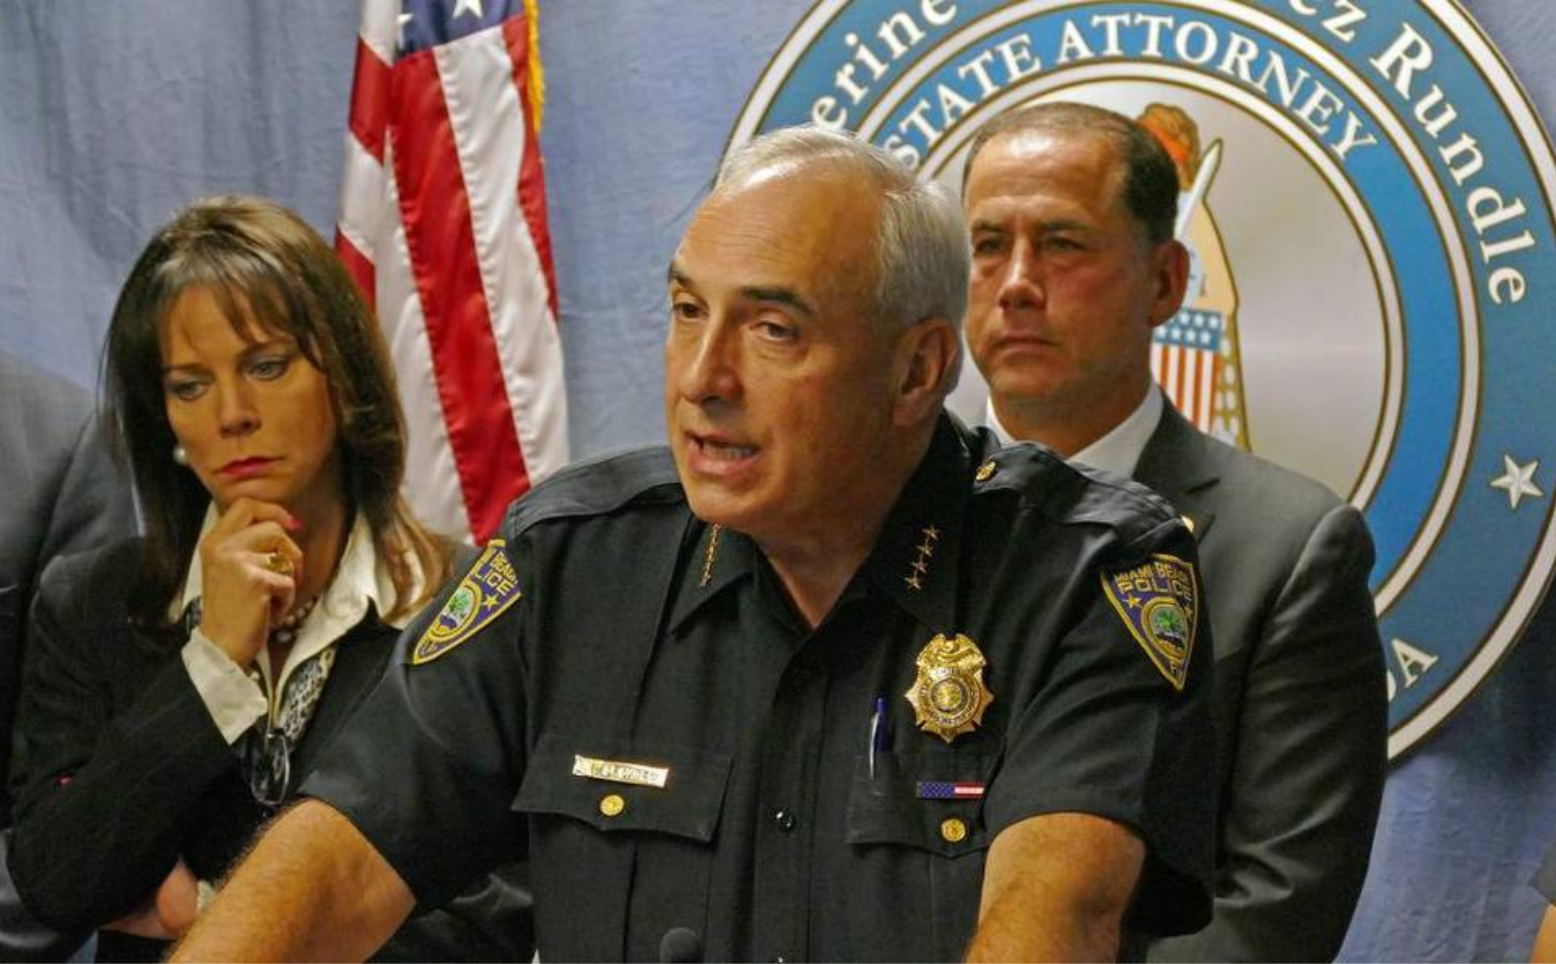 Miami Beach Police Chief Talks Hate Crimes And Safe Schools | WLRN